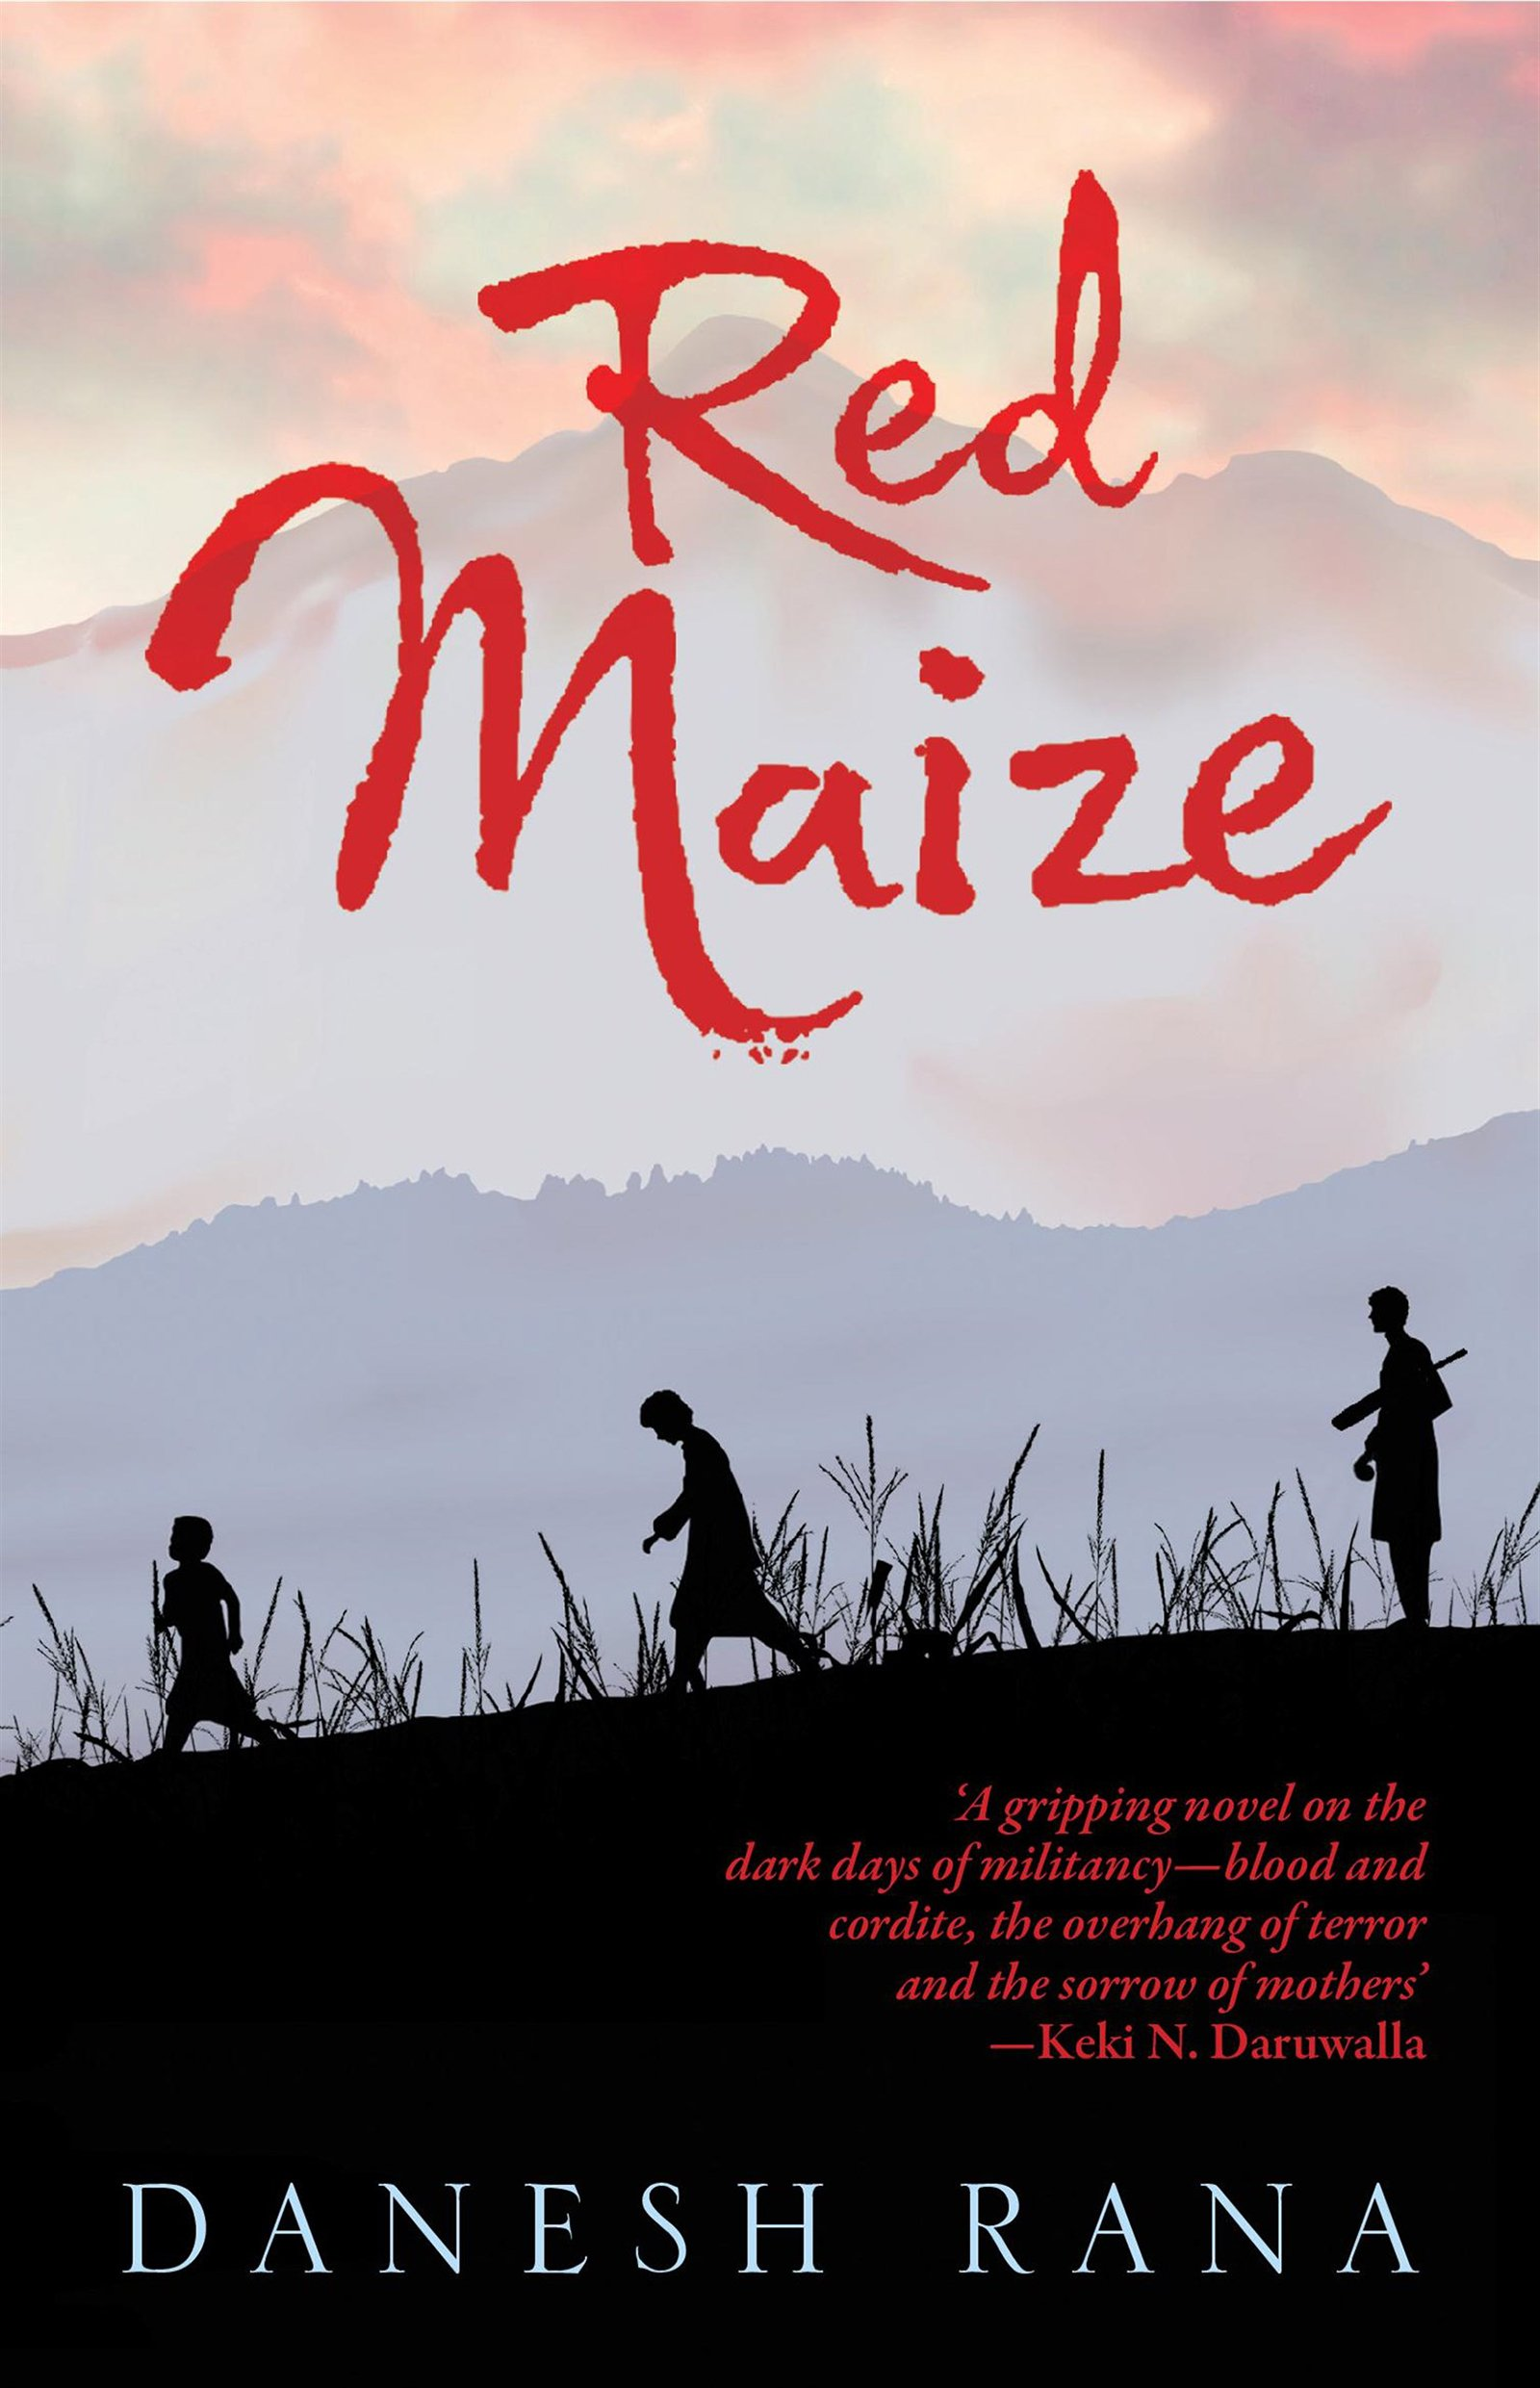 Red Maize Paperback – March 22, 2016